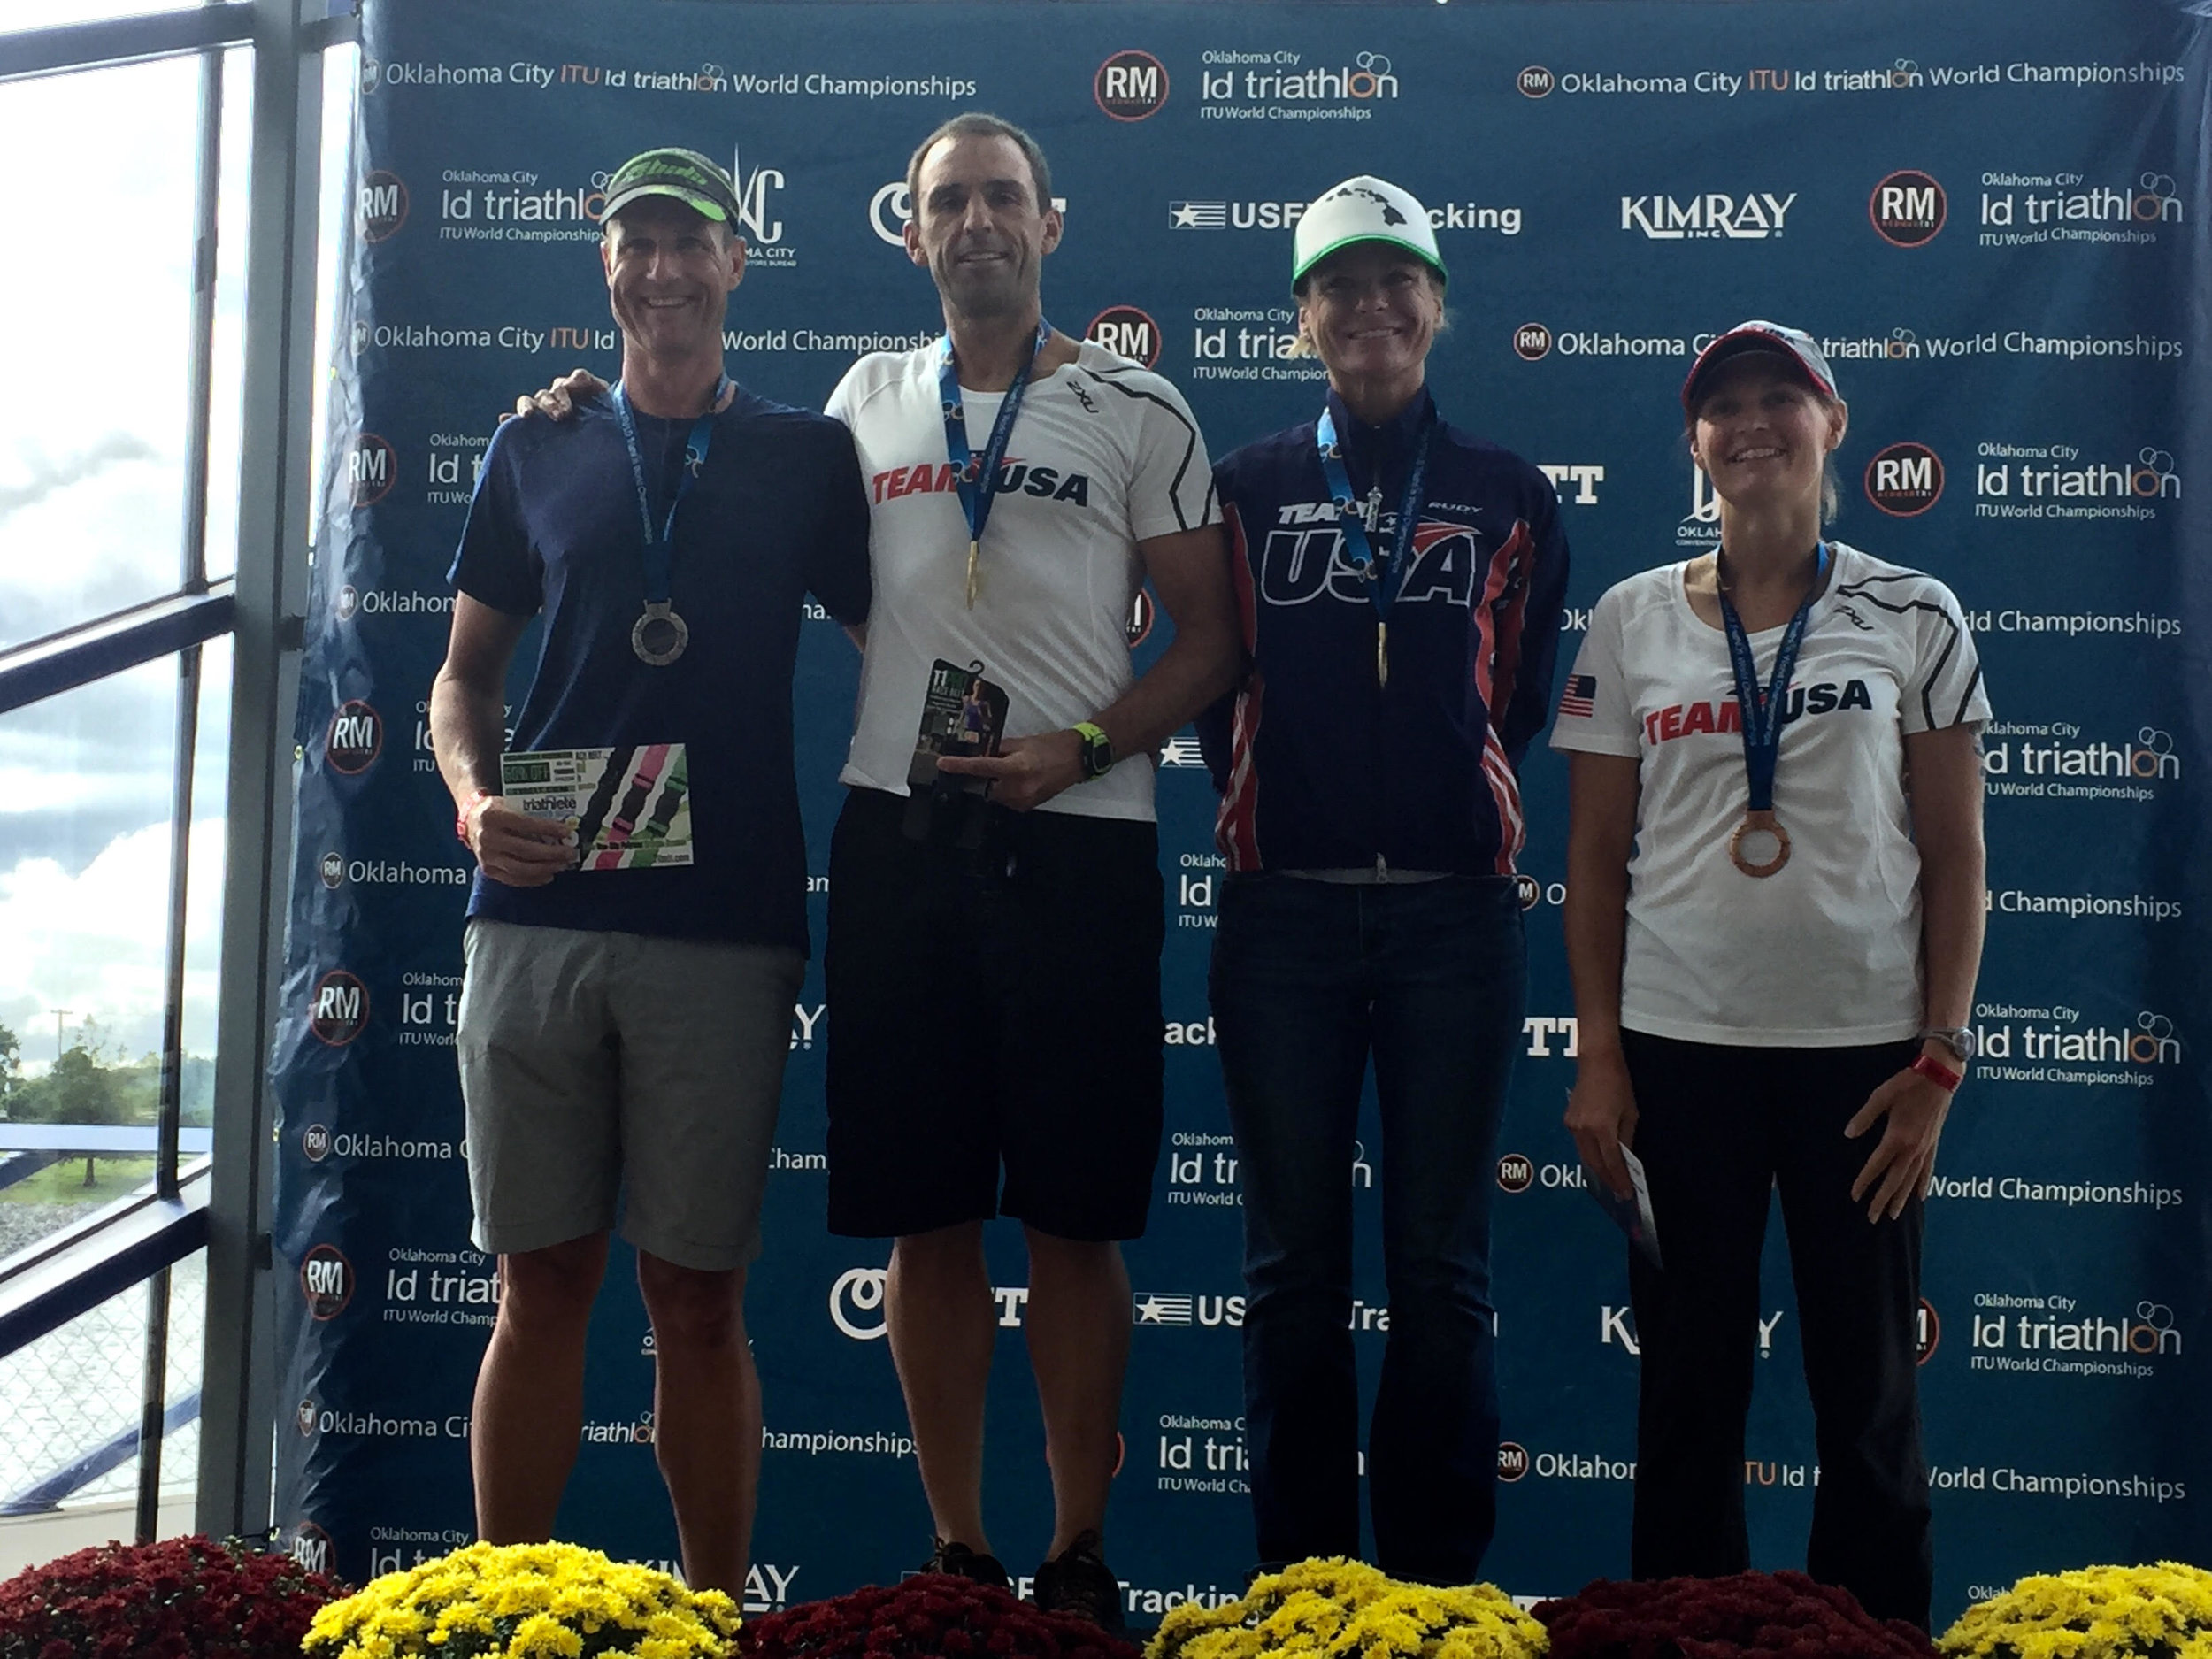 A USA sweep in the 40-44 age group - Tim Hola on the top step